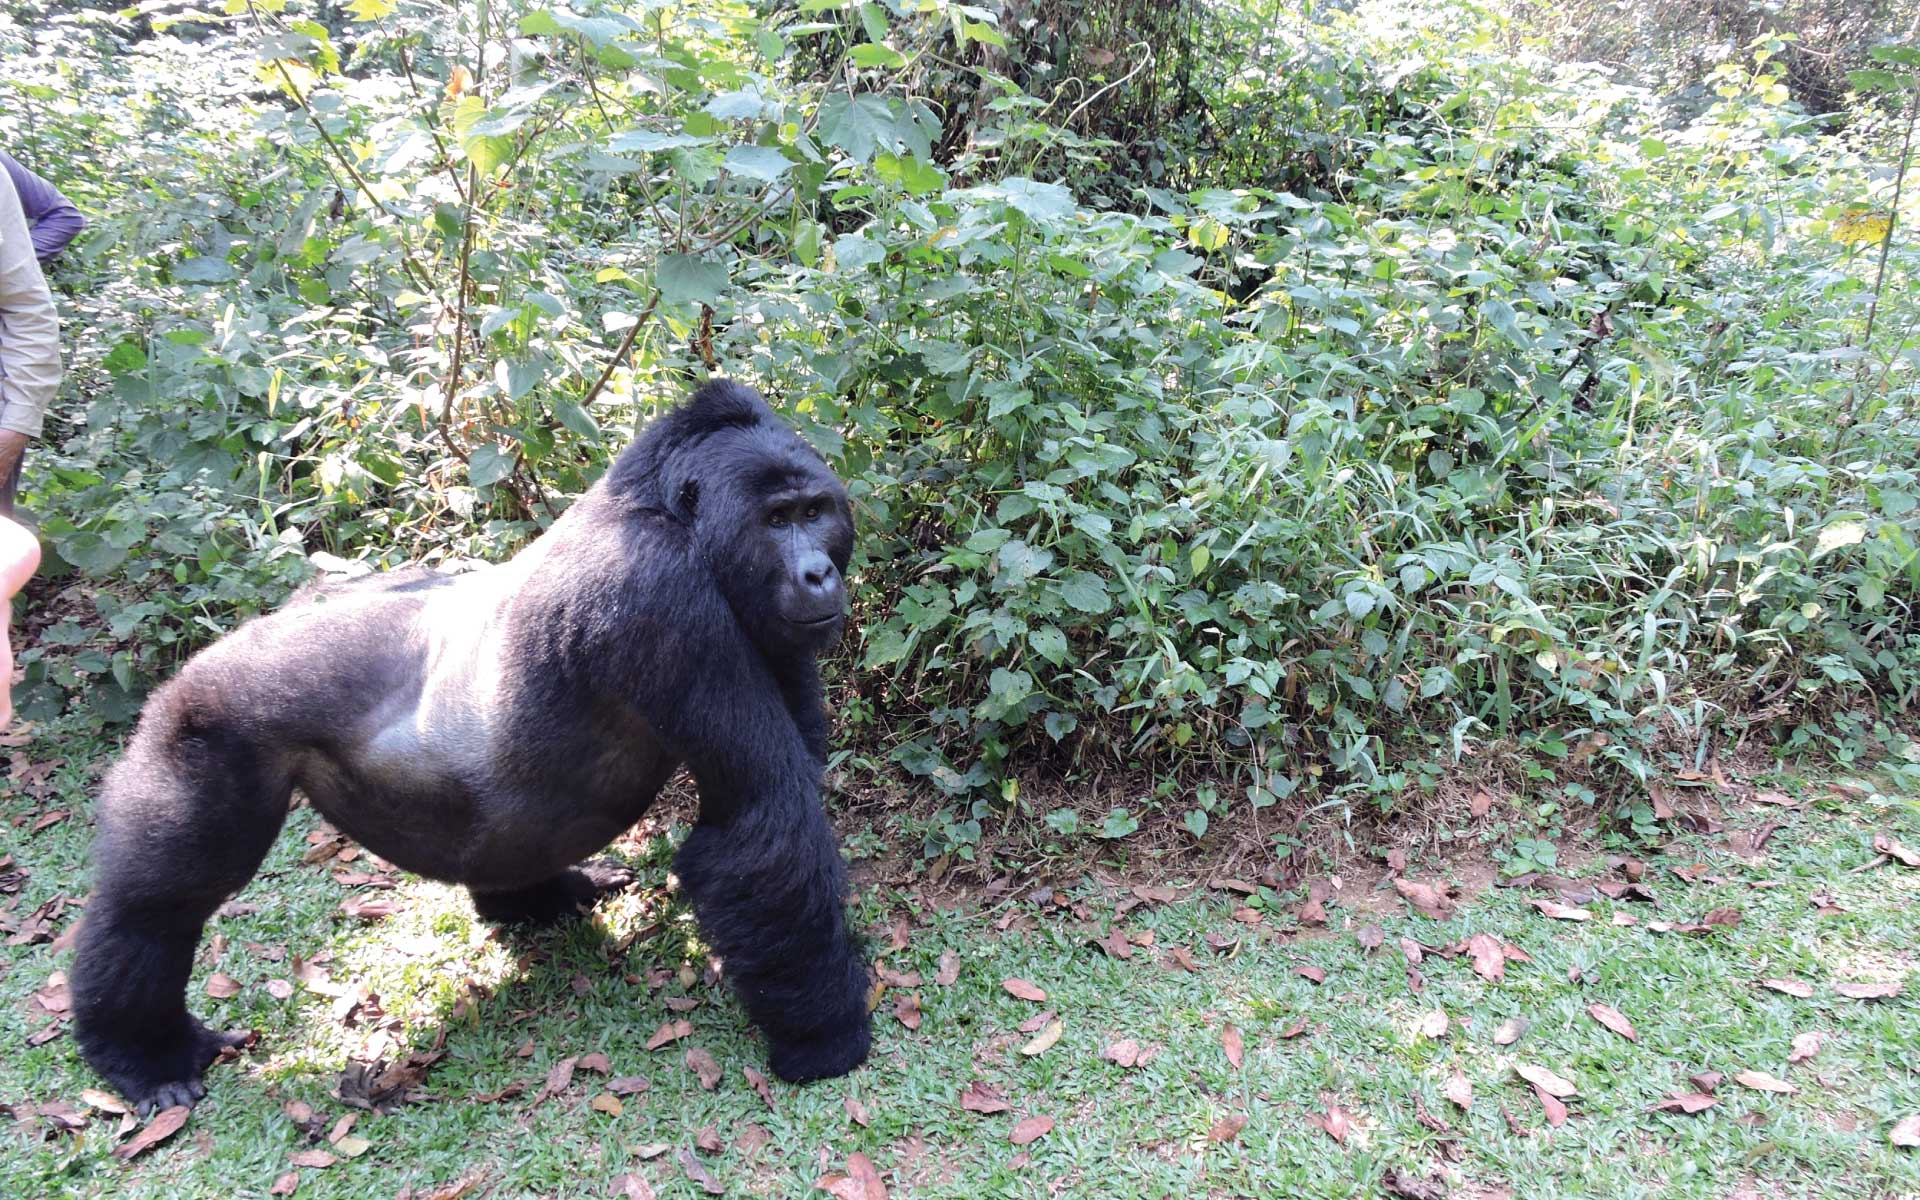 Gorilla Tracking in Bwindi Forest